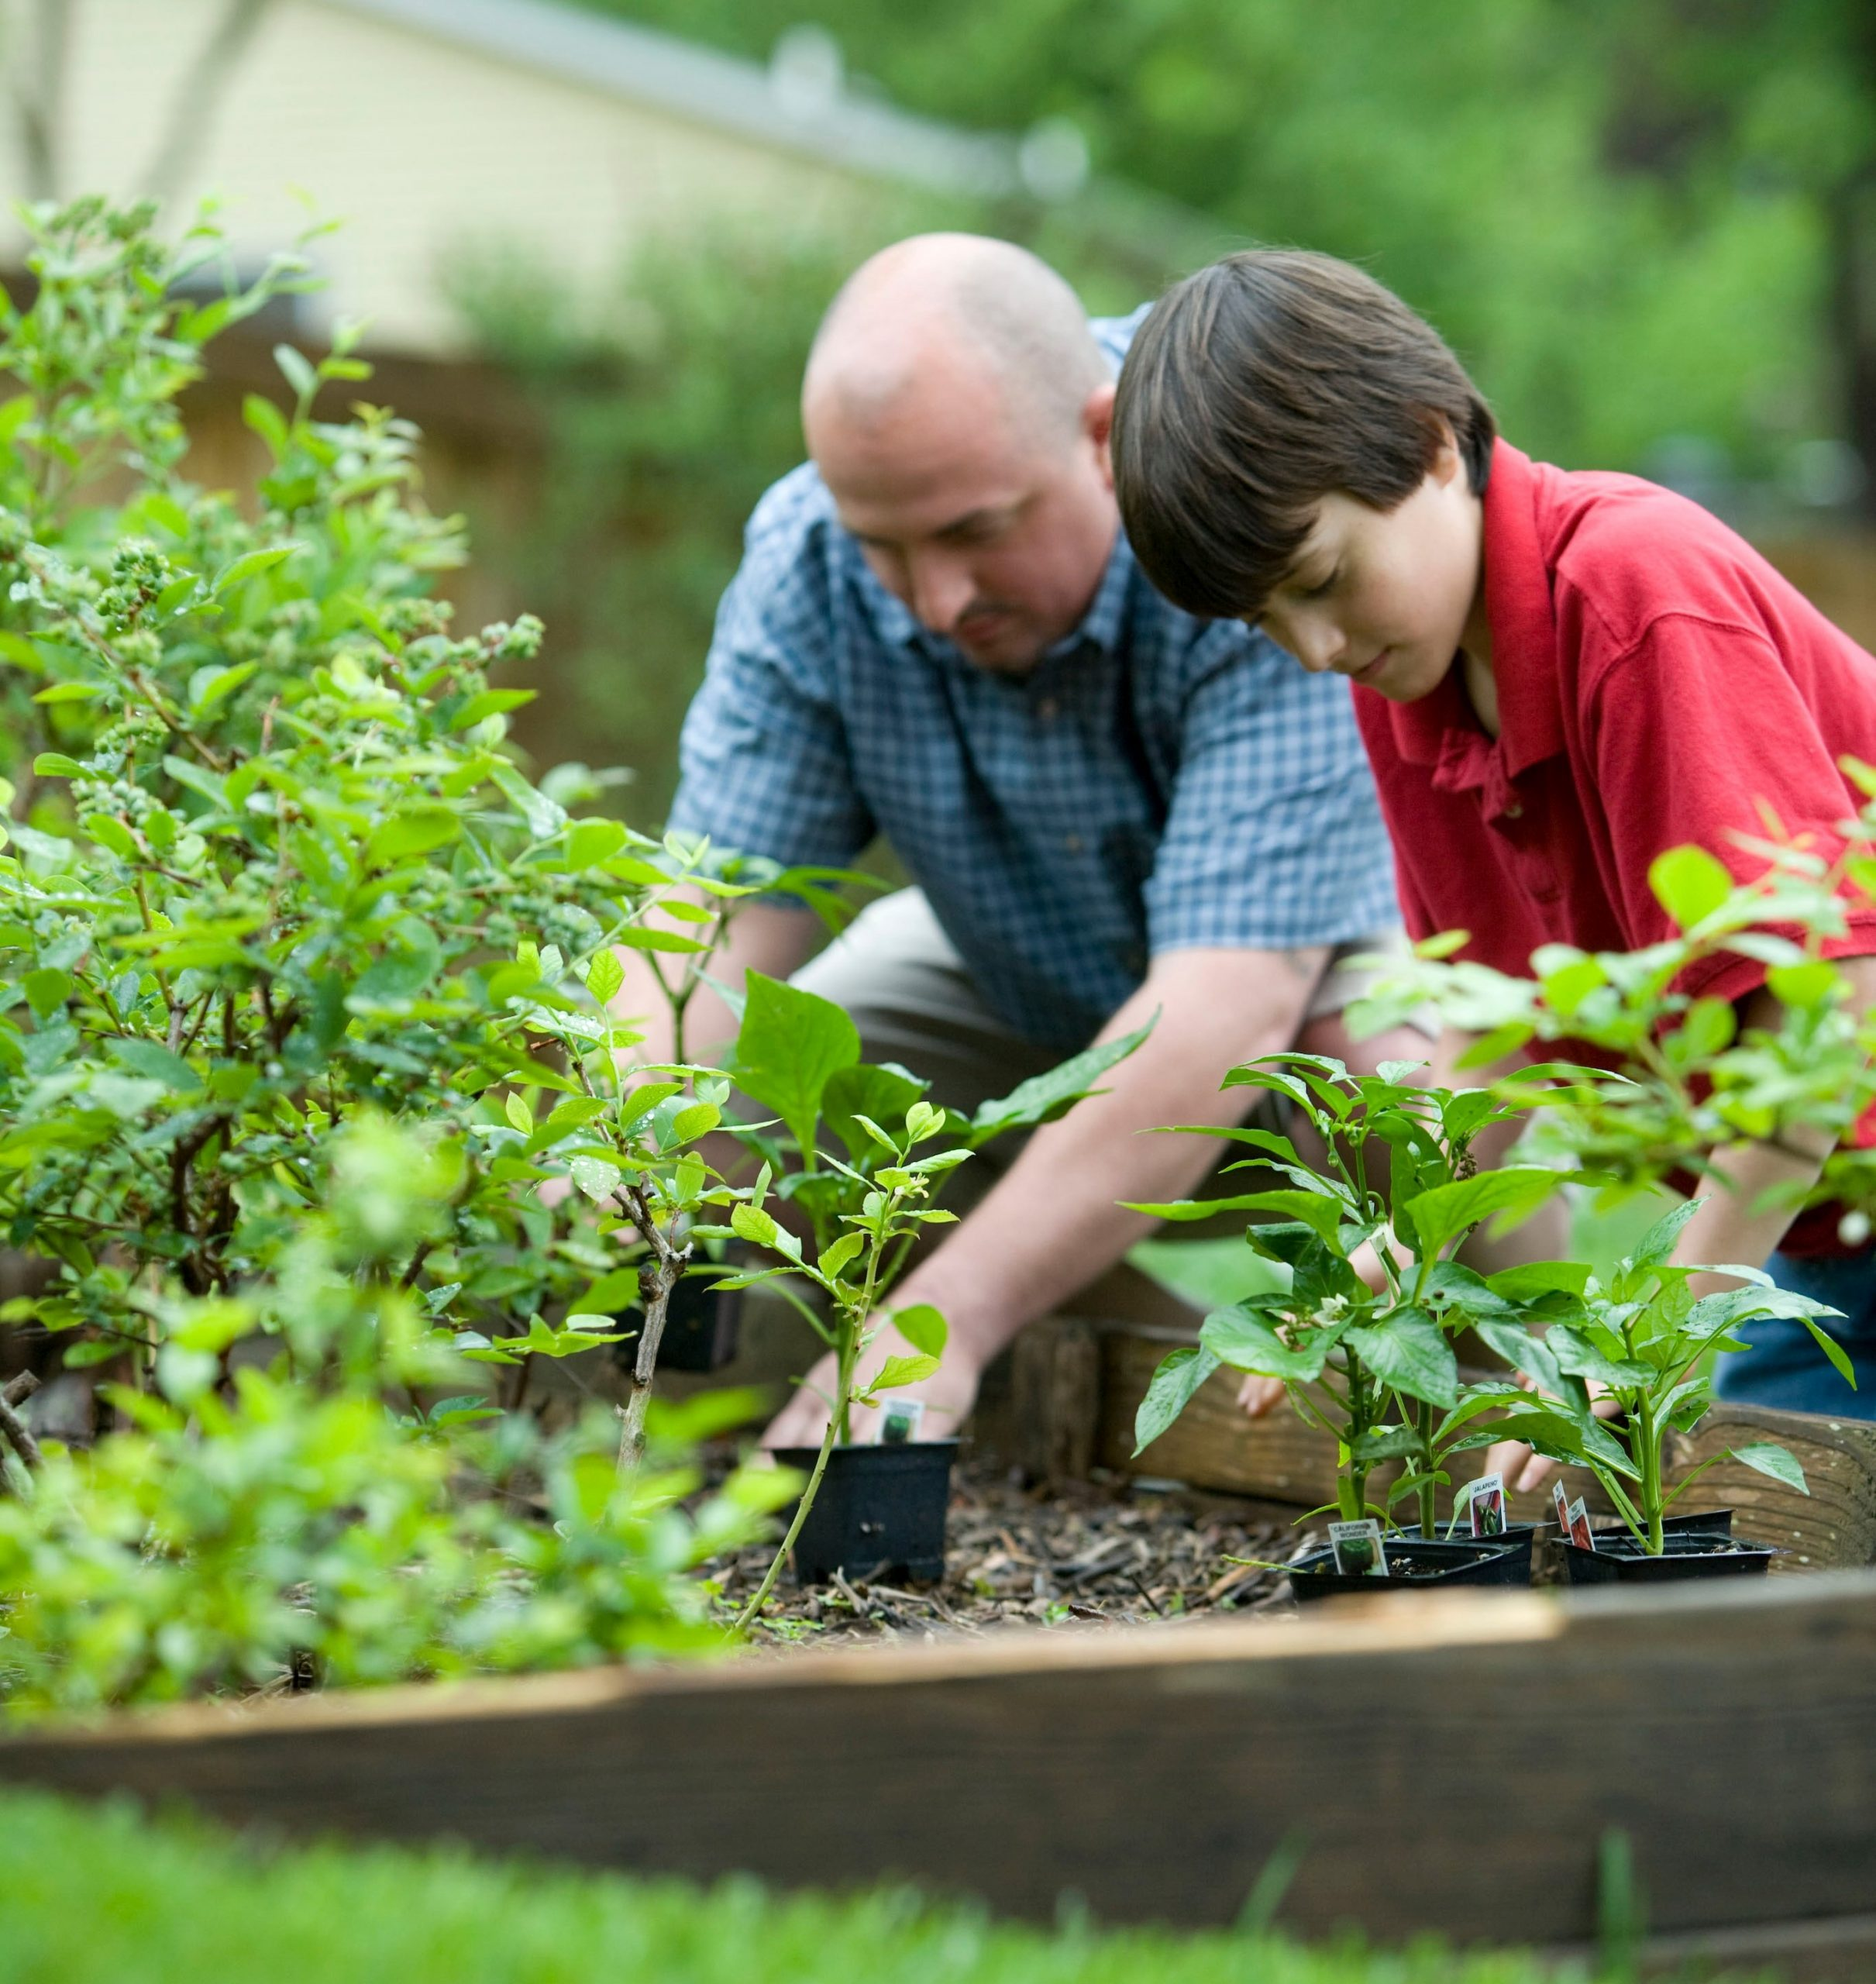 Gardening later in life